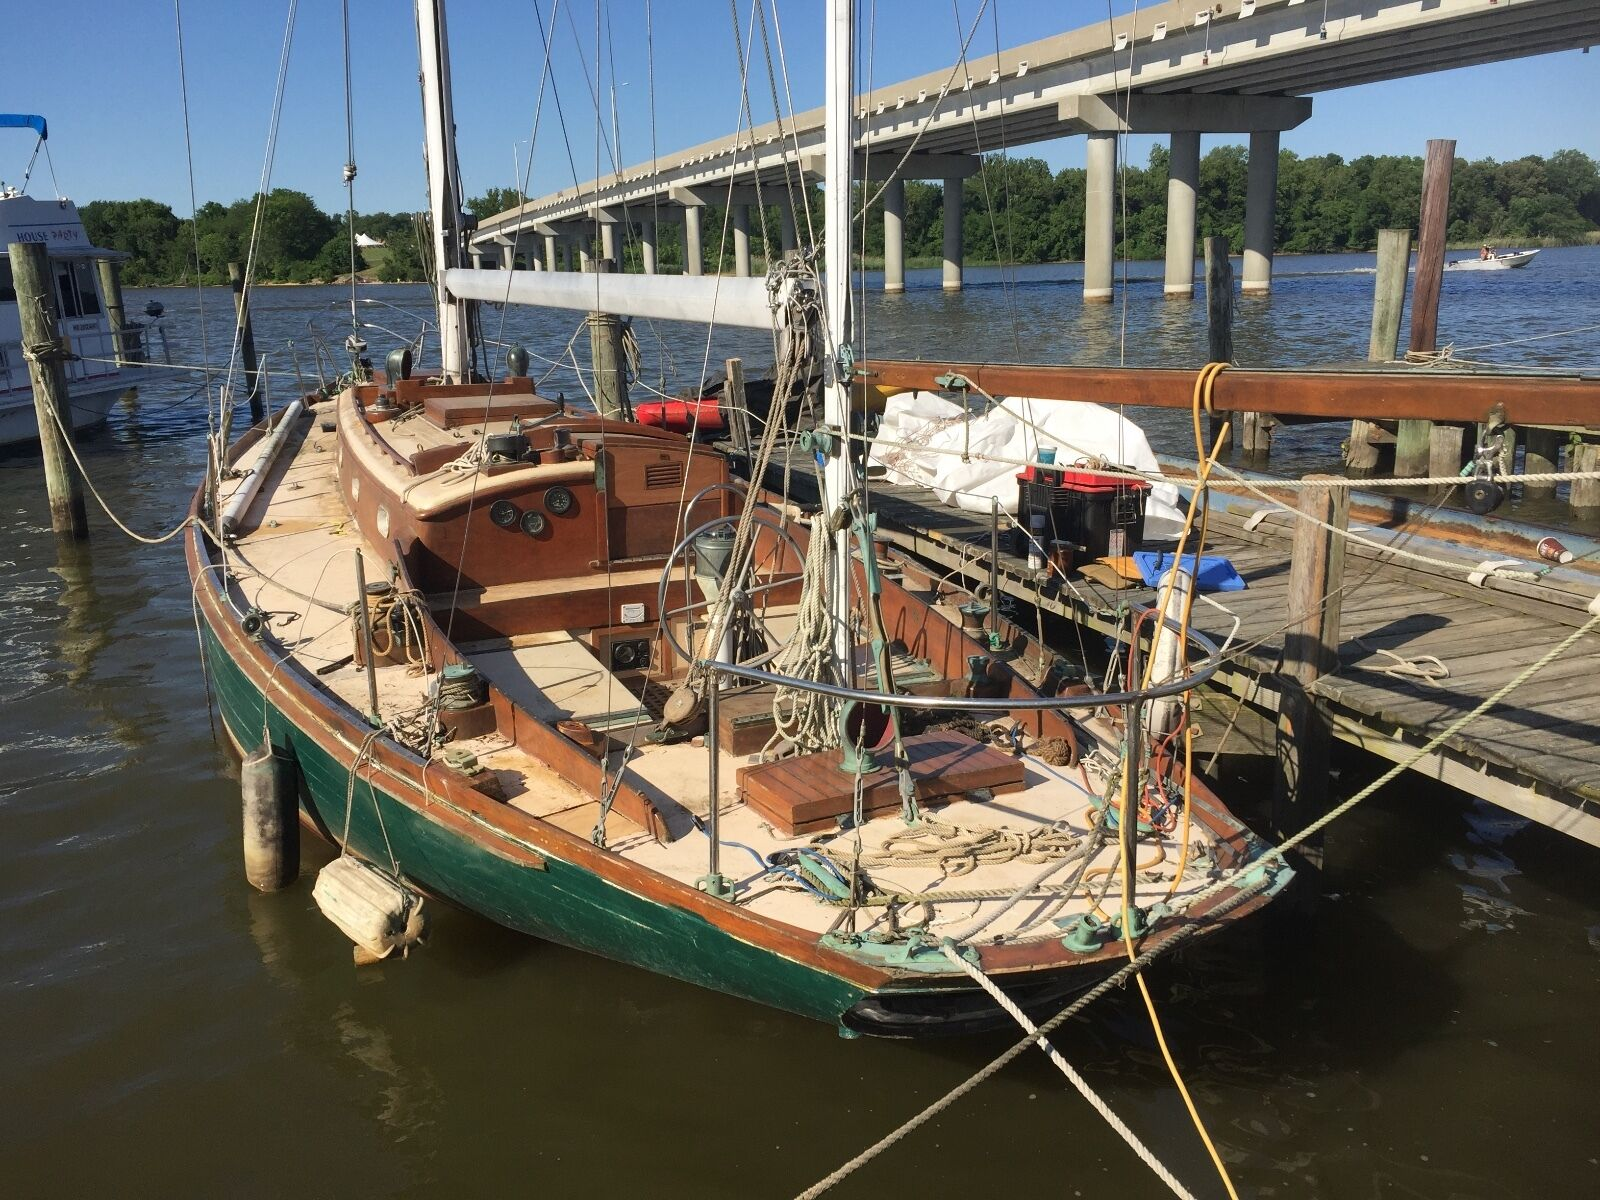 1961 Little Harbor Auxiliary Yawl Sailboat, Earleville MD | No Fees & No Reserve